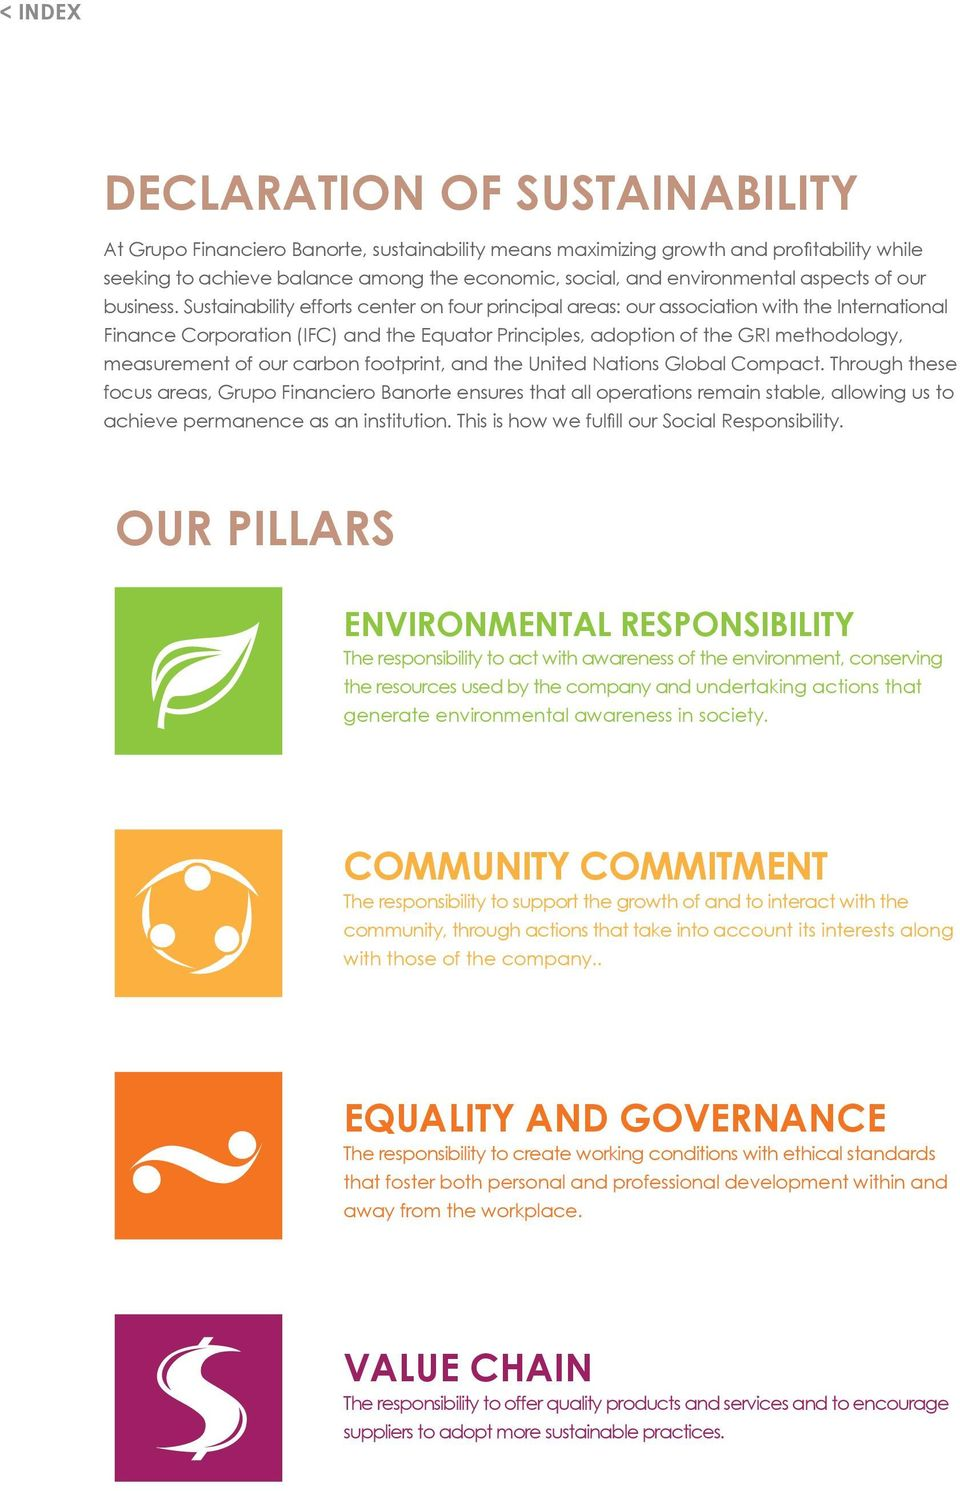 carbon footprint, and the United Nations Global Compact. Through these focus areas, ensures that all operations remain stable, allowing us to achieve permanence as an institution.